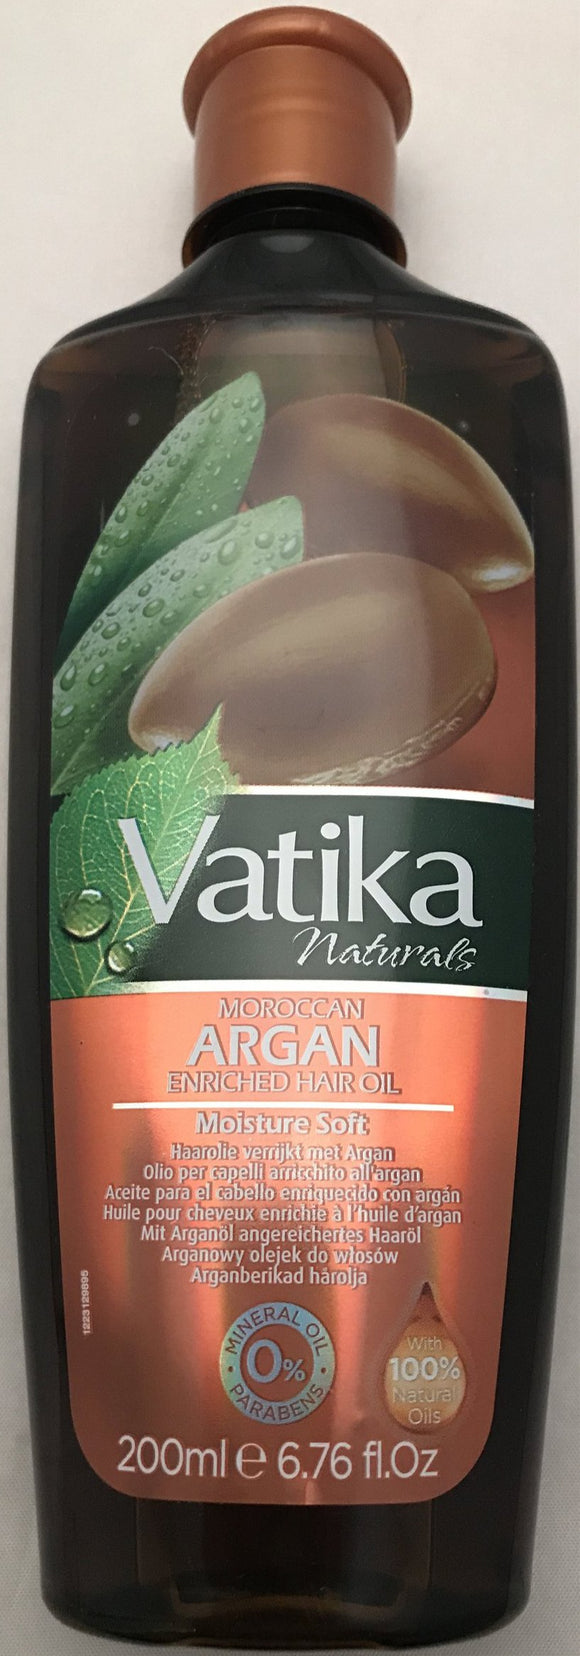 Vatika Moroccan Argan Hair Oil - 200ml - ExoticEstore